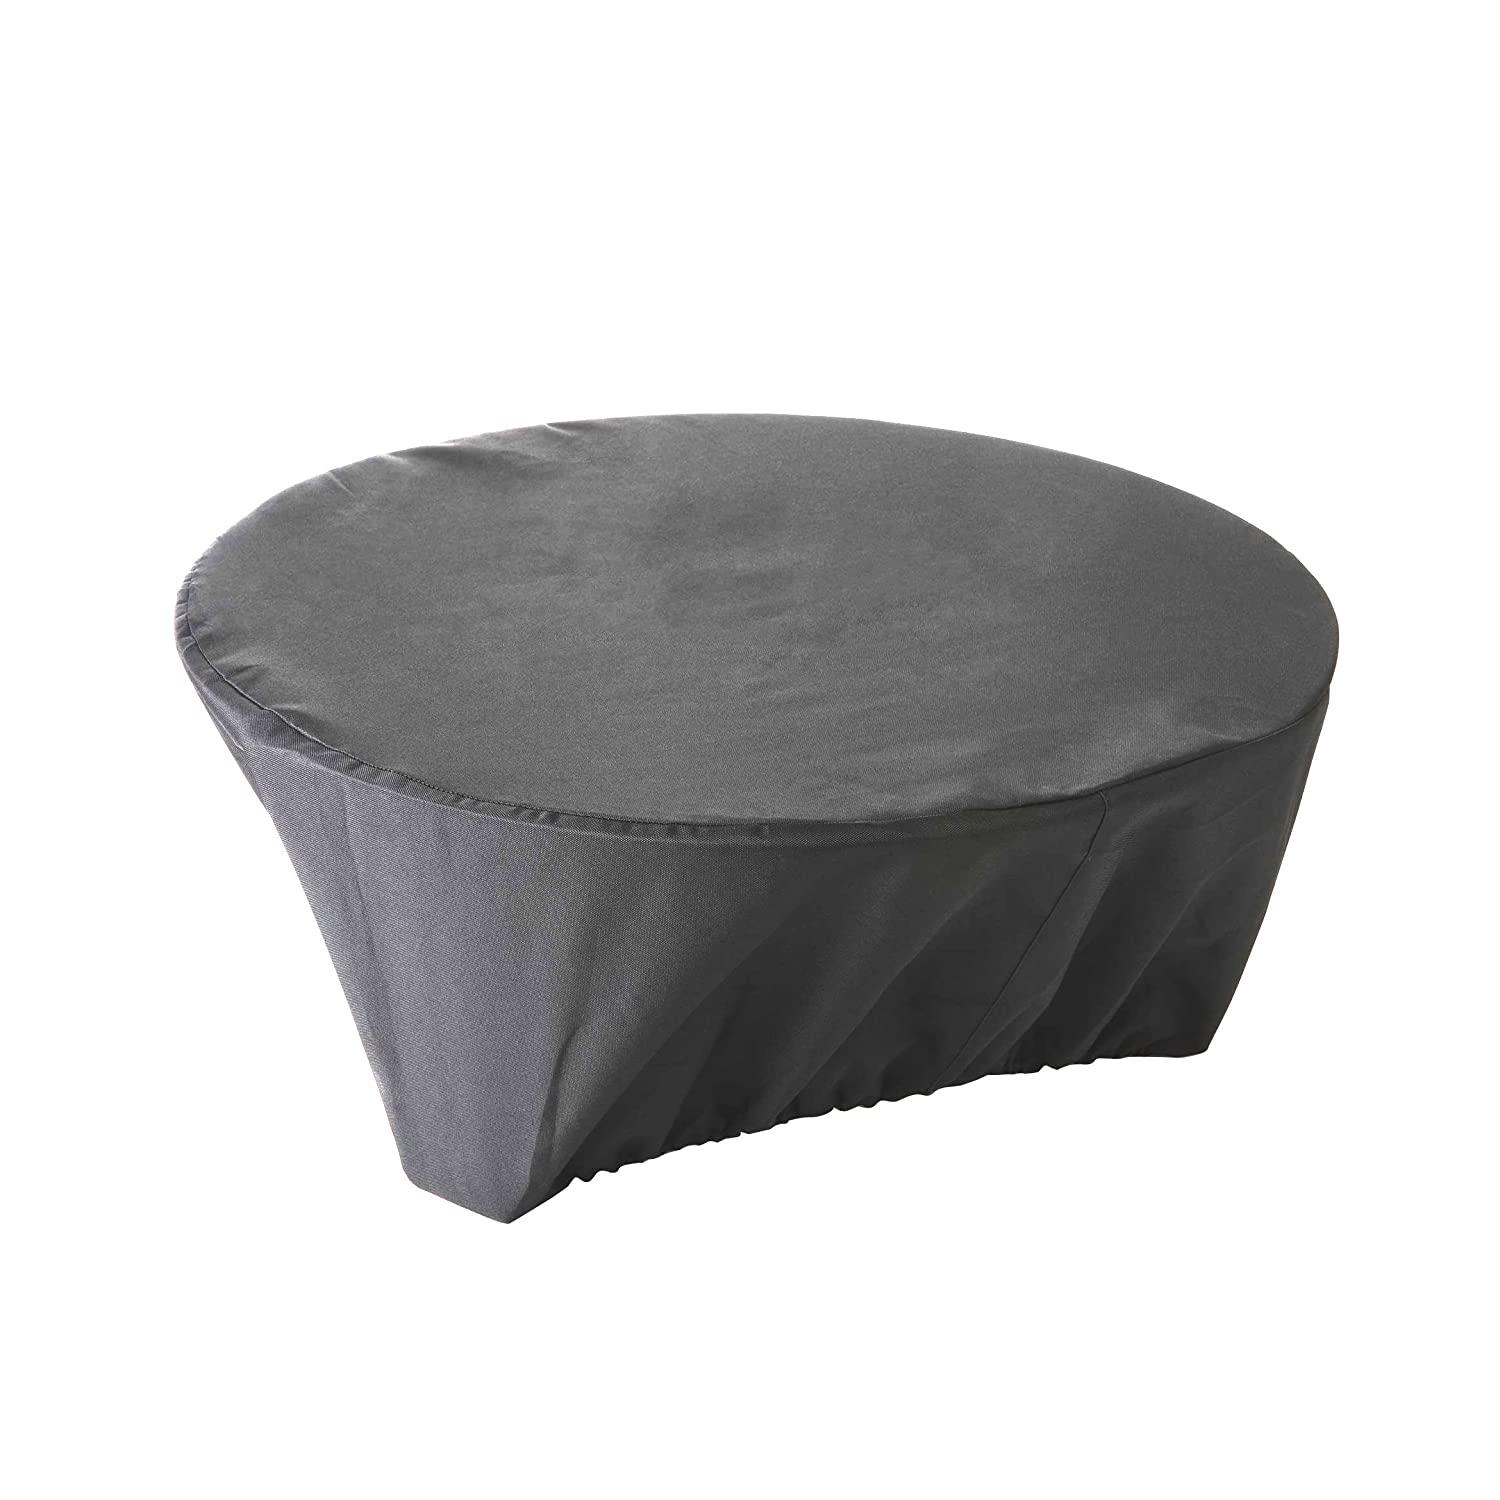 High Quality Waterproof Protective Cover for Firebasket Anthracite Coloured Polyester 80 cm x h 30 cm QUATTRO DIFFUSION